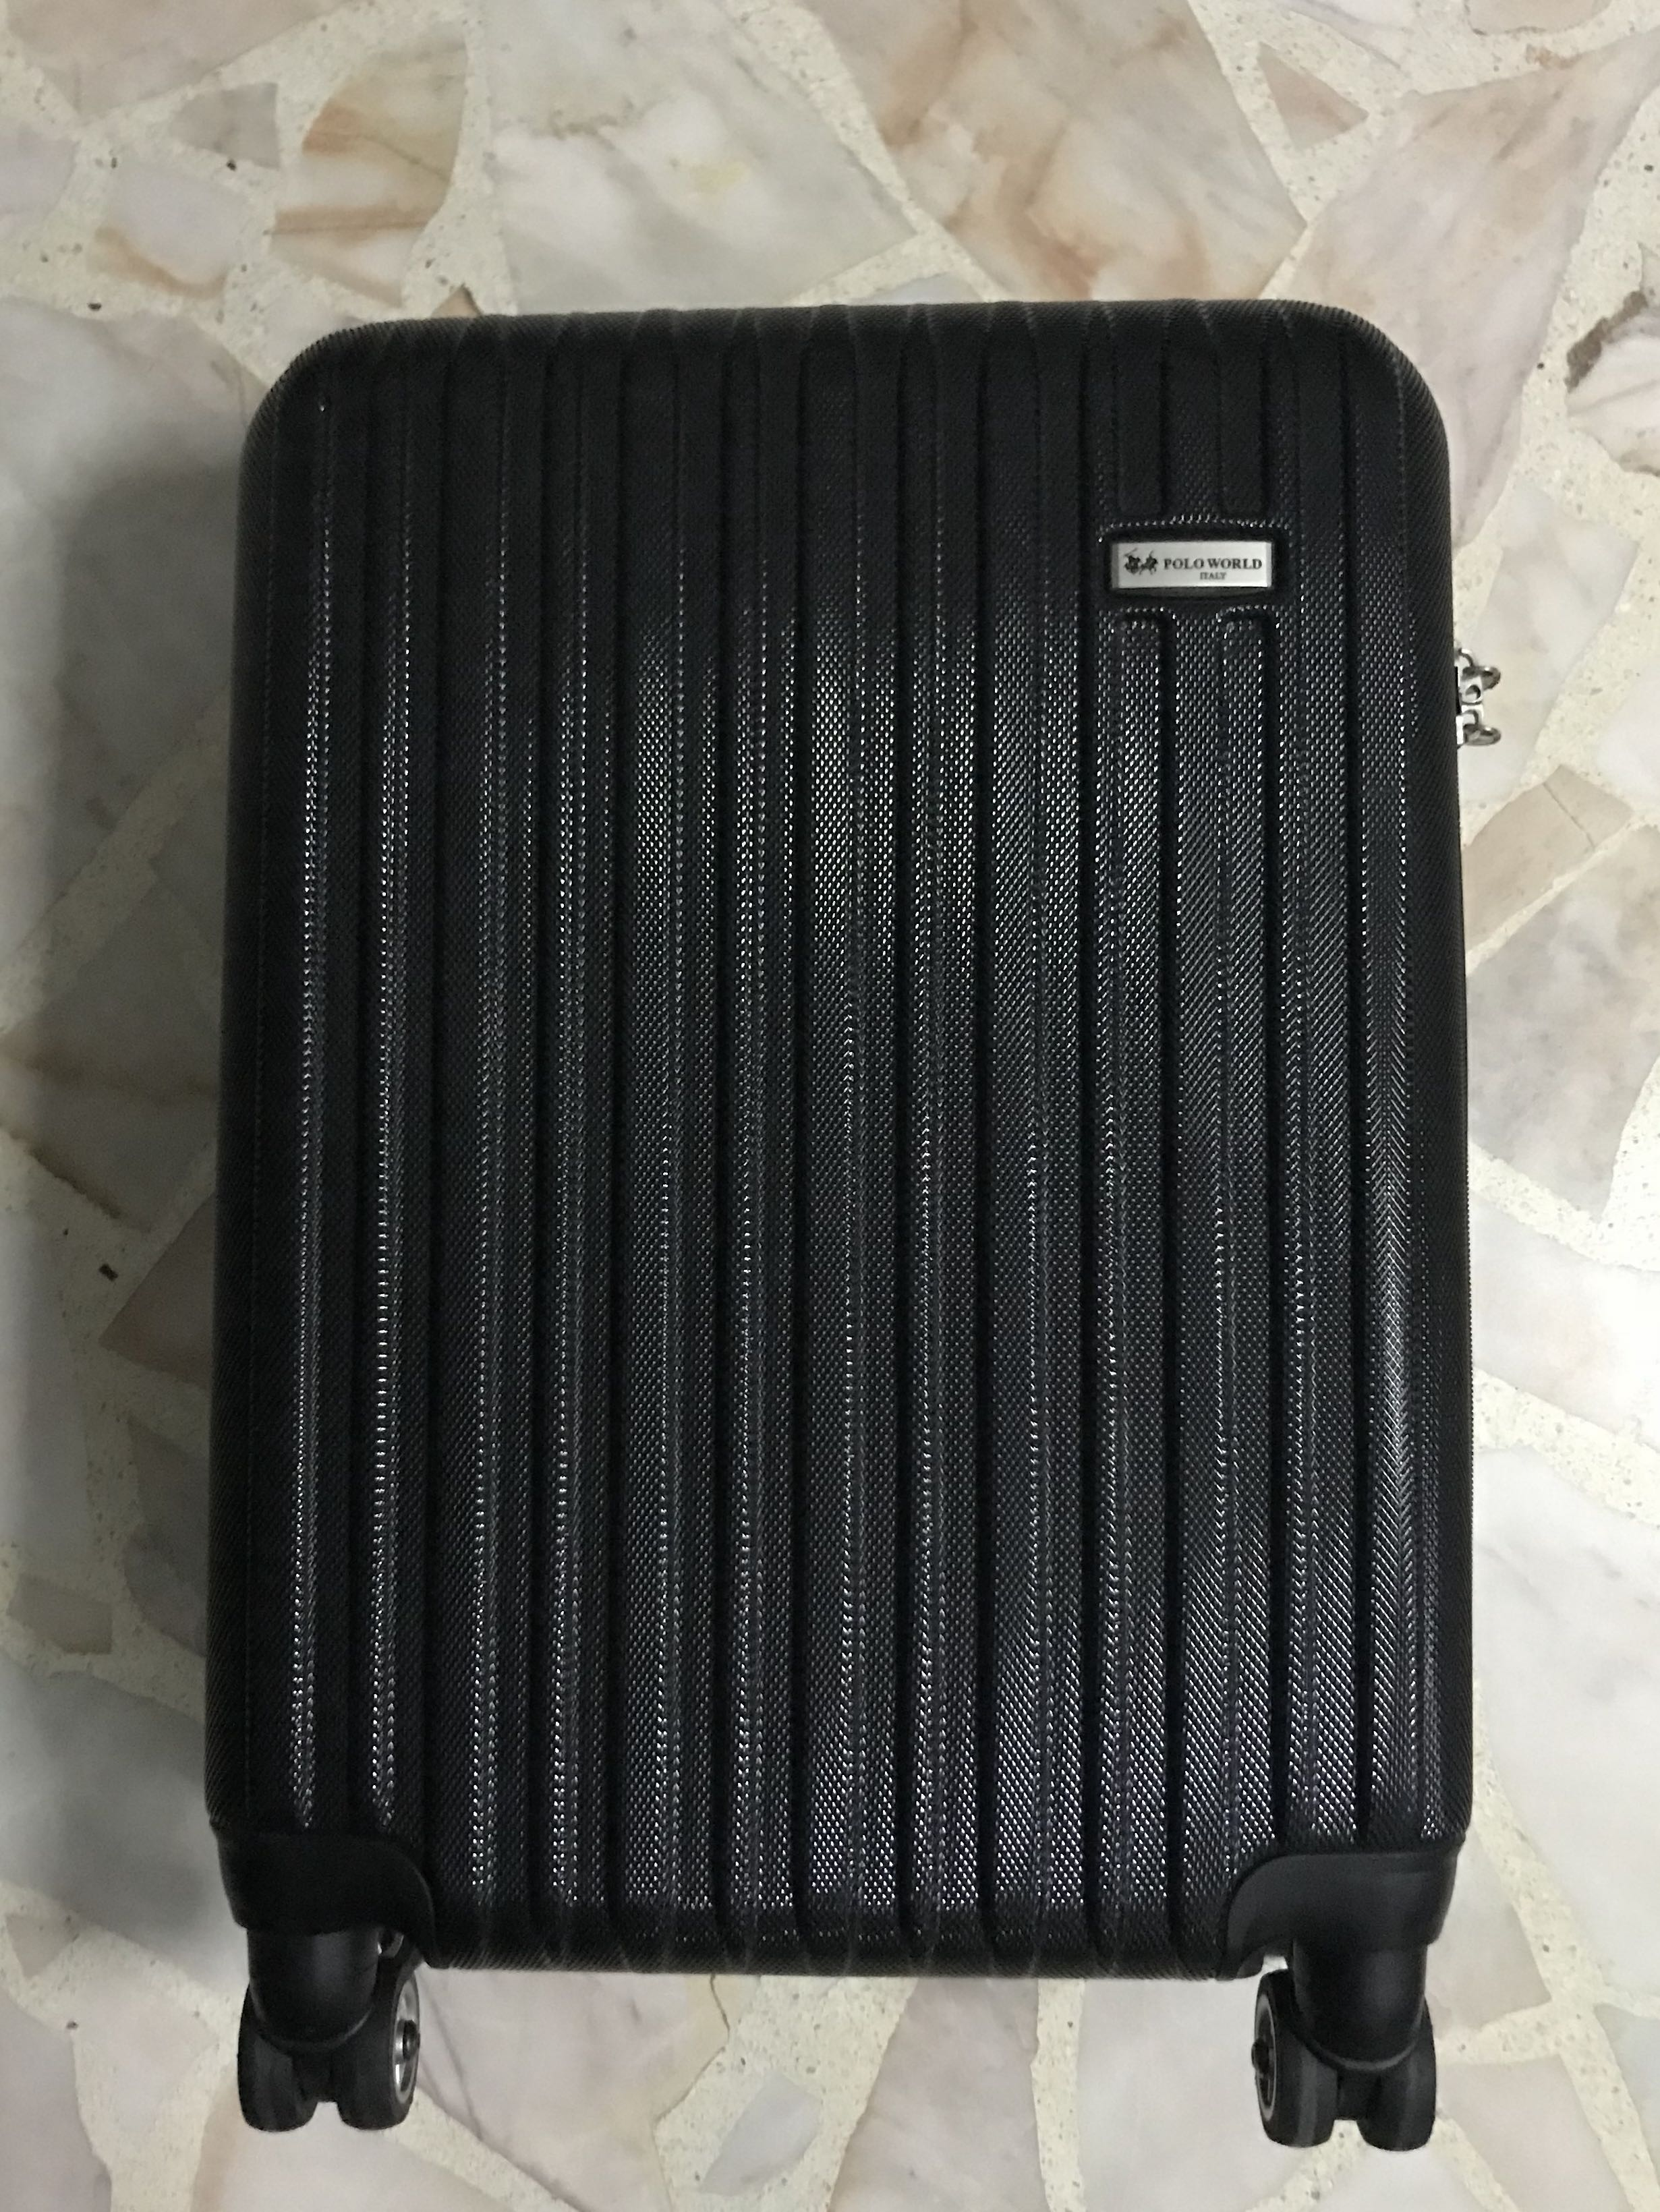 ede7a270652 Polo World Luggage Bag, Luxury, Bags & Wallets, Others on Carousell